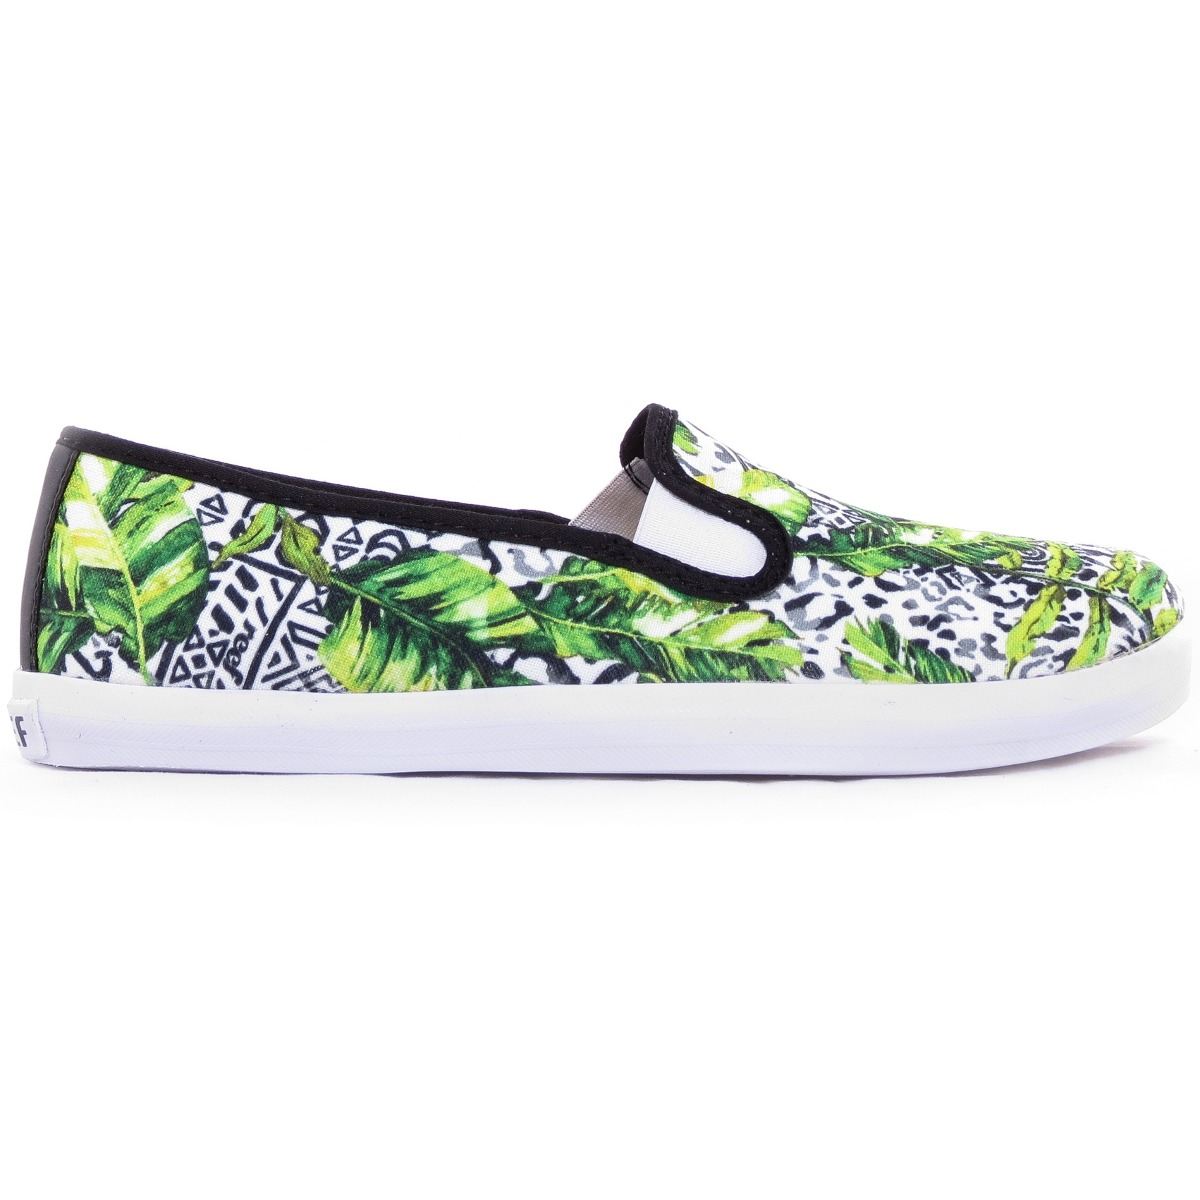 Zapatillas - Reef Zapatillas Panchas Reef Marcy Slip On Lona